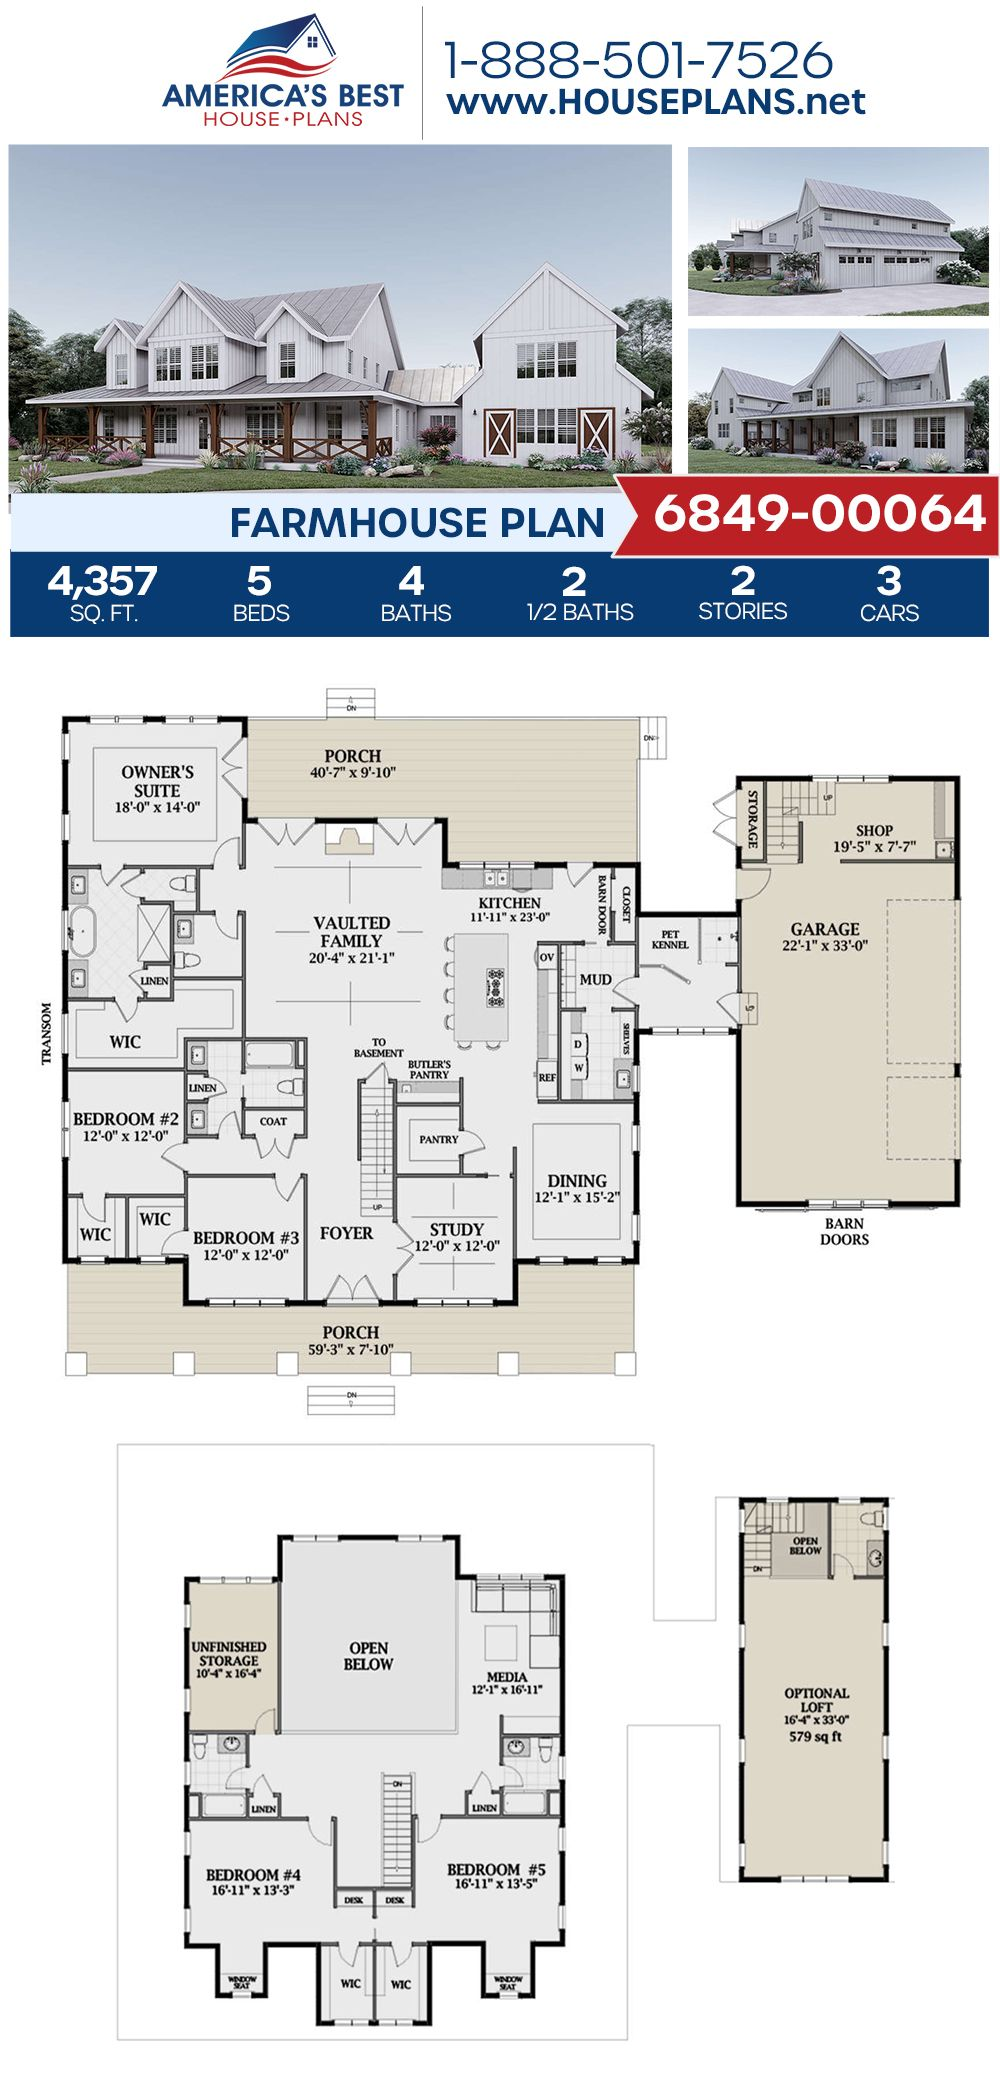 House Plan 6849 00064 Modern Farmhouse Plan 4 357 Square Feet 5 Bedrooms 5 Bathrooms In 2021 Modern Farmhouse Plans Farmhouse Floor Plans Farmhouse Plans